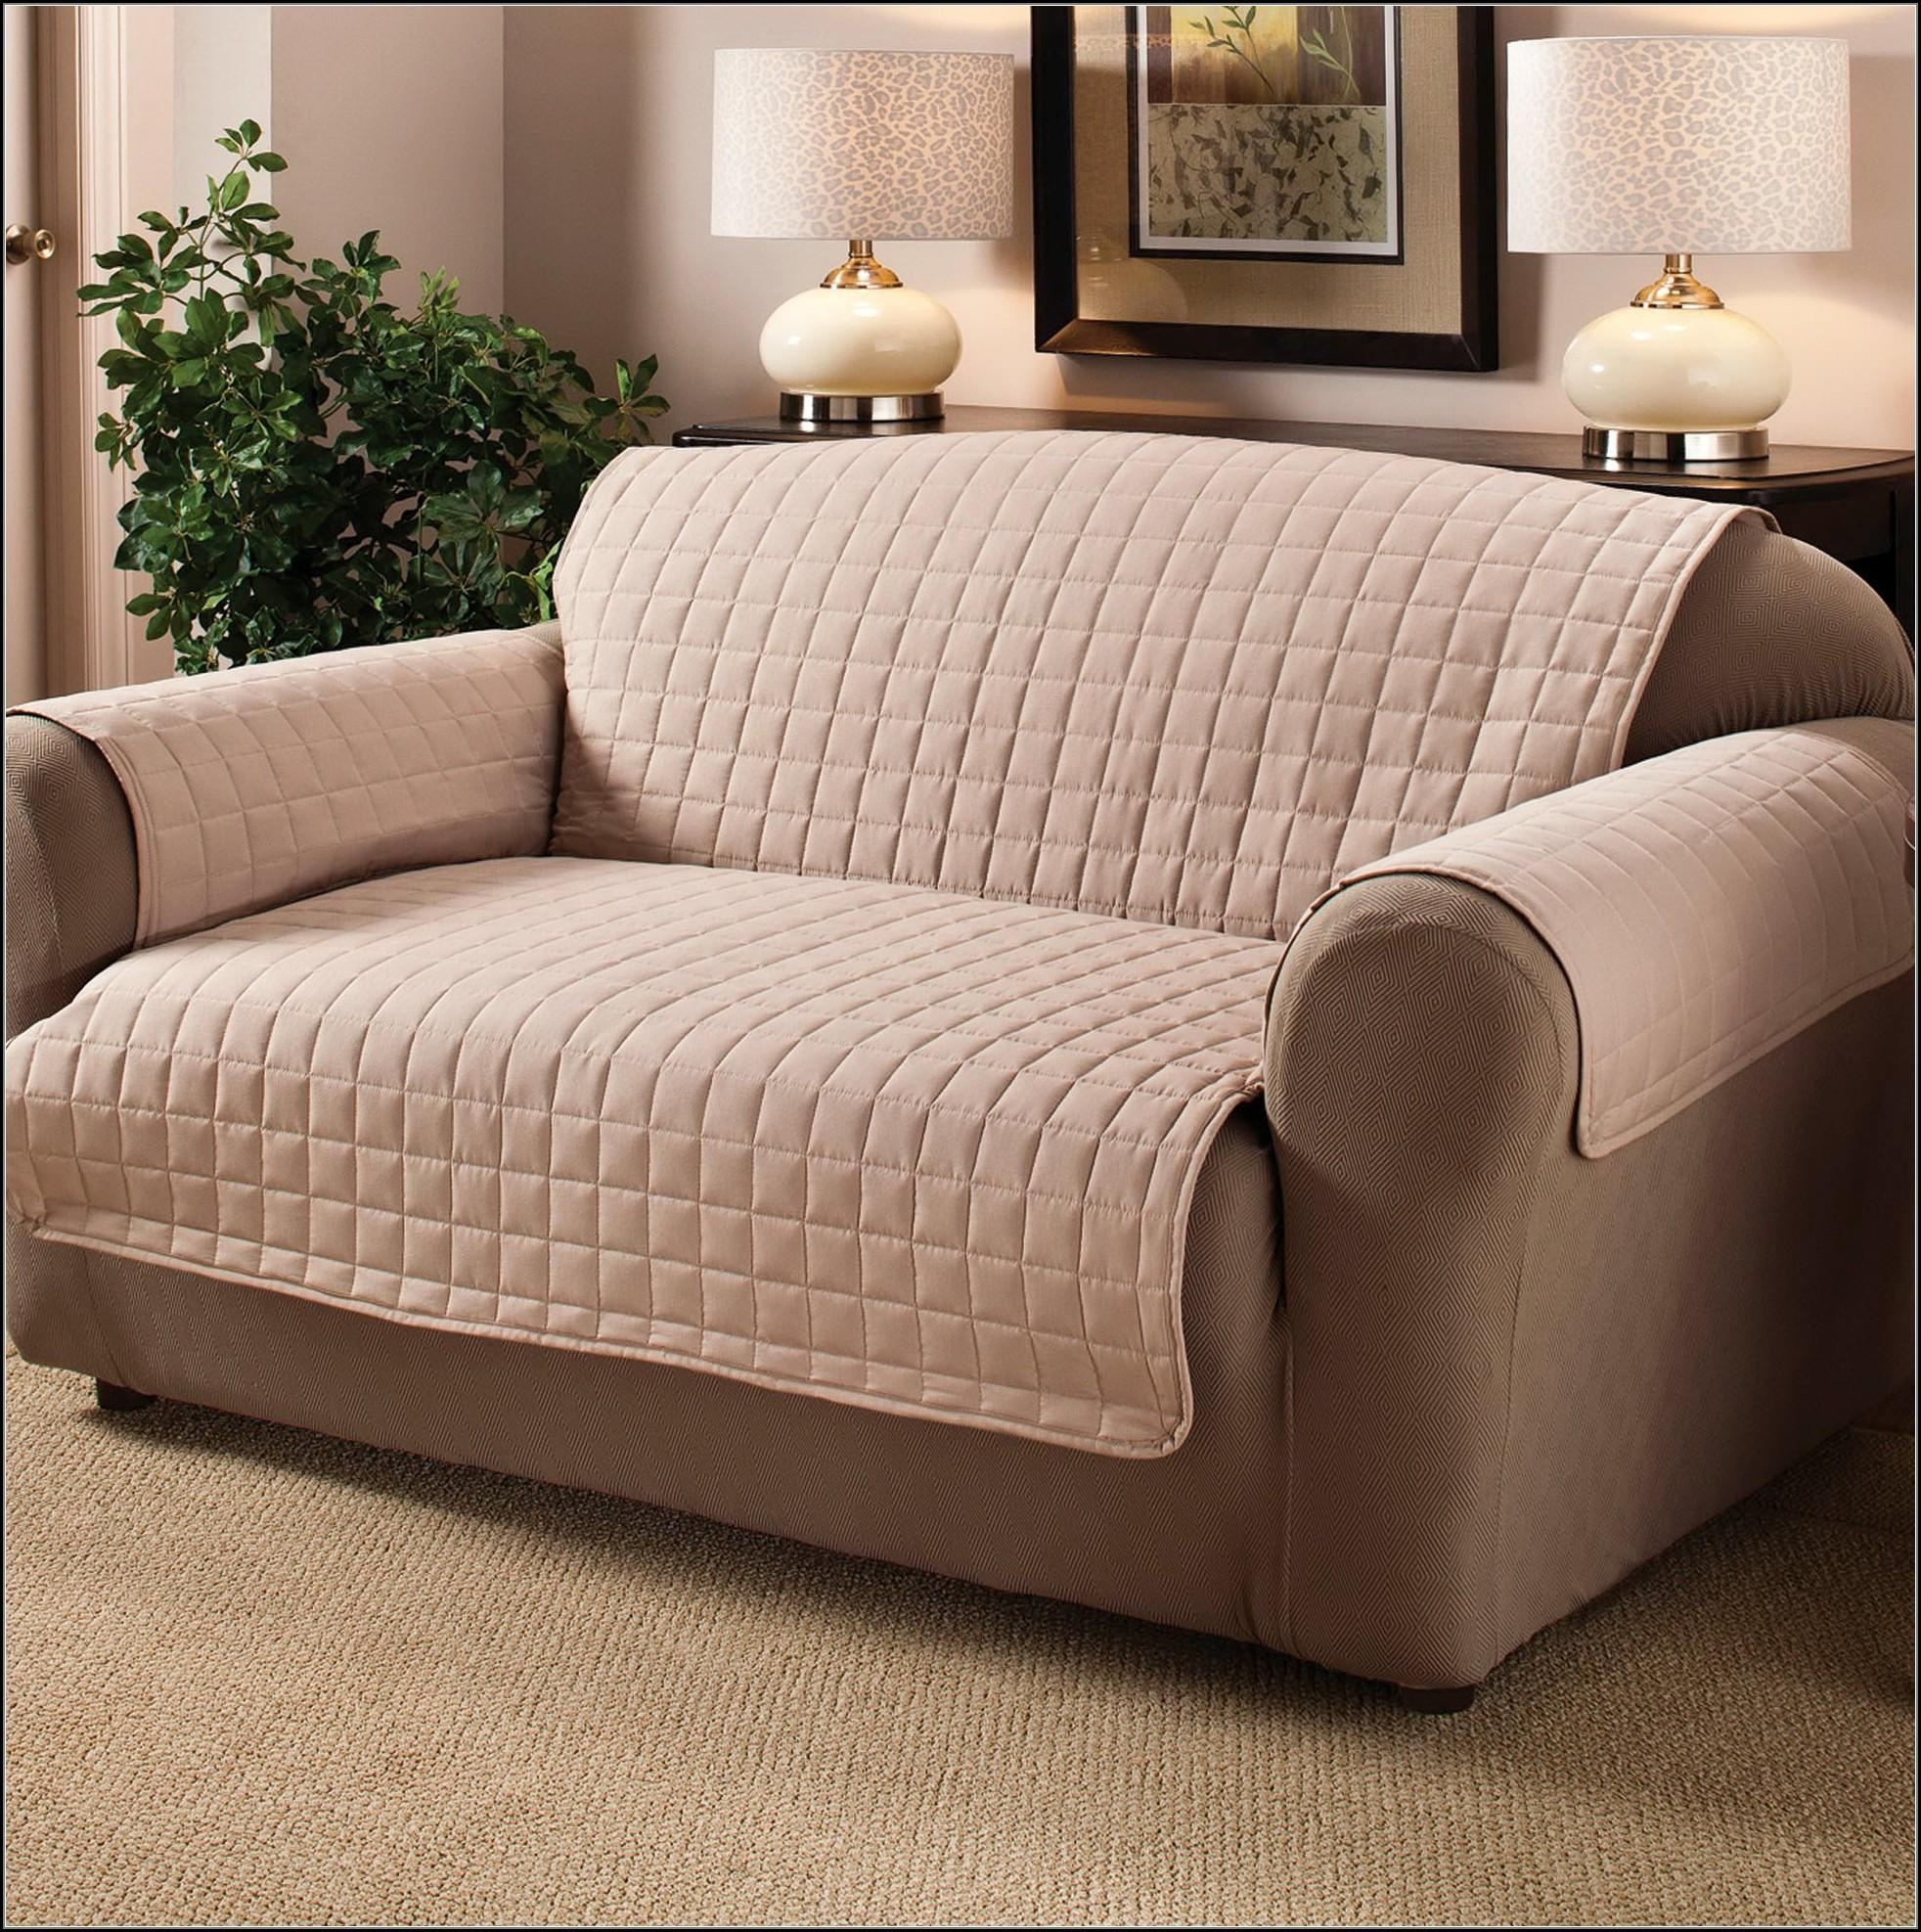 Sofa And Loveseat Covers At Walmart – Sofa : Home Furniture Ideas Regarding Sofa And Loveseat Covers (Image 17 of 20)